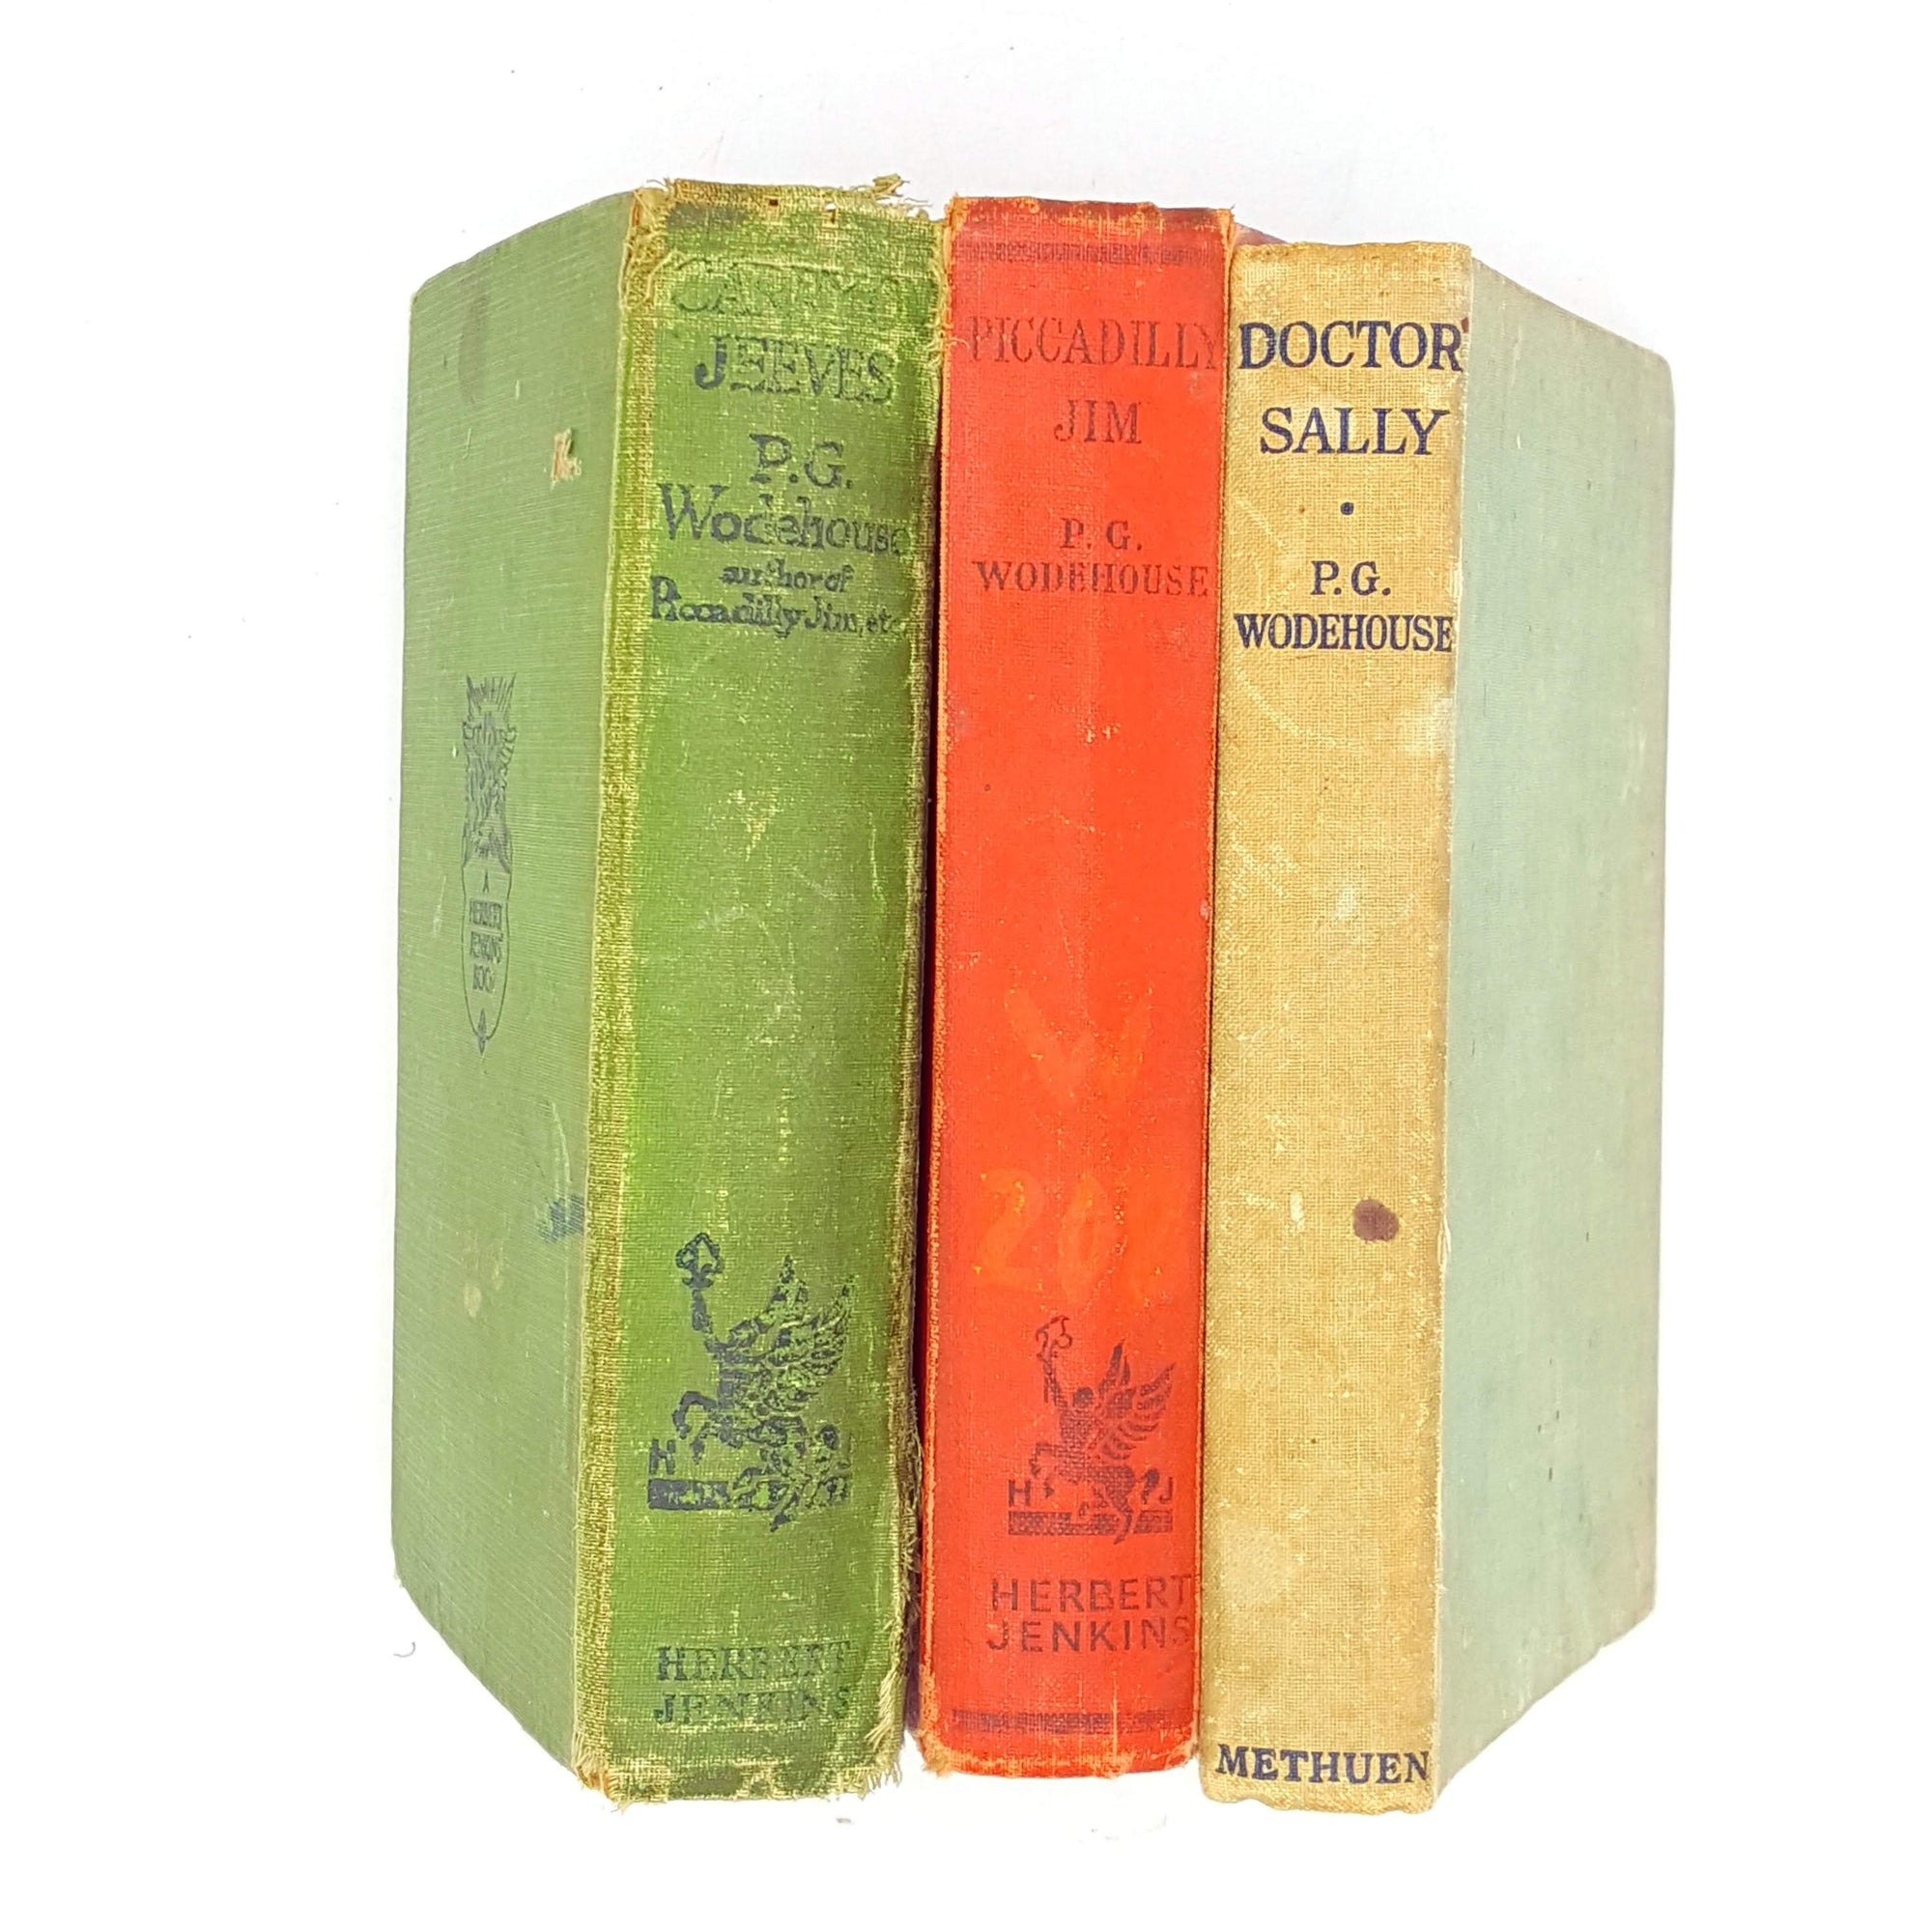 old-pg-wodehouse-herbert-jenkins-green-red-decorative-thrift-country-house-library-blue-vintage-jeeves-books-